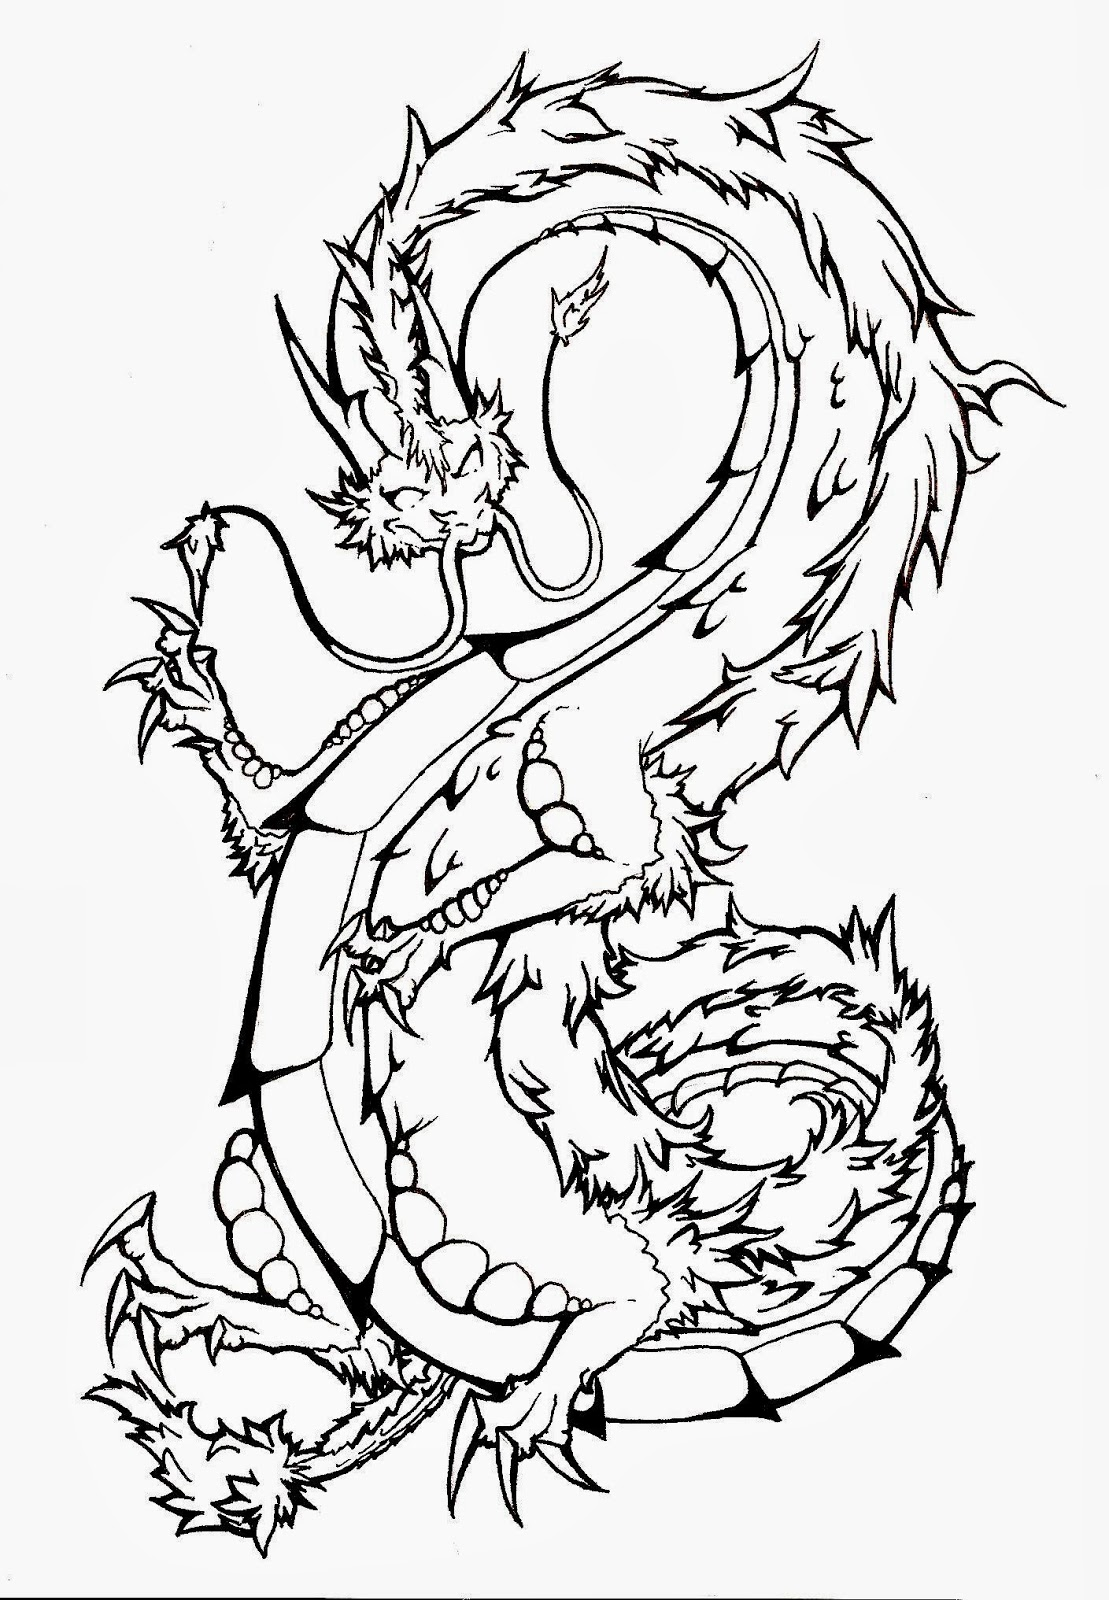 Tattoo Design Line Art : Line art tattoos piercings free tattoo designs